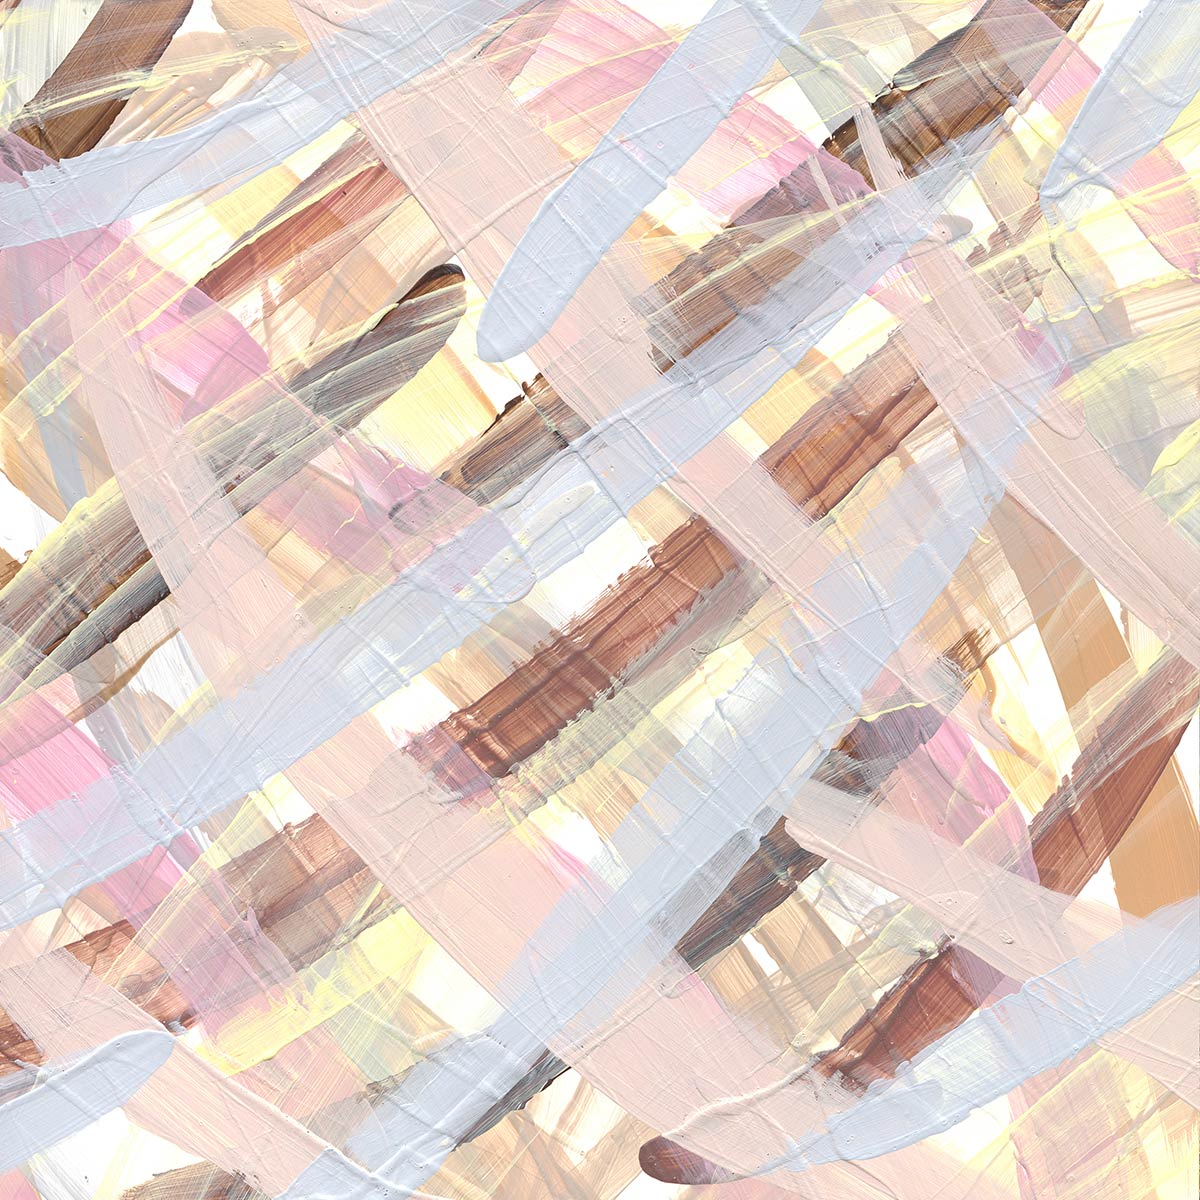 Continuous Painting 6